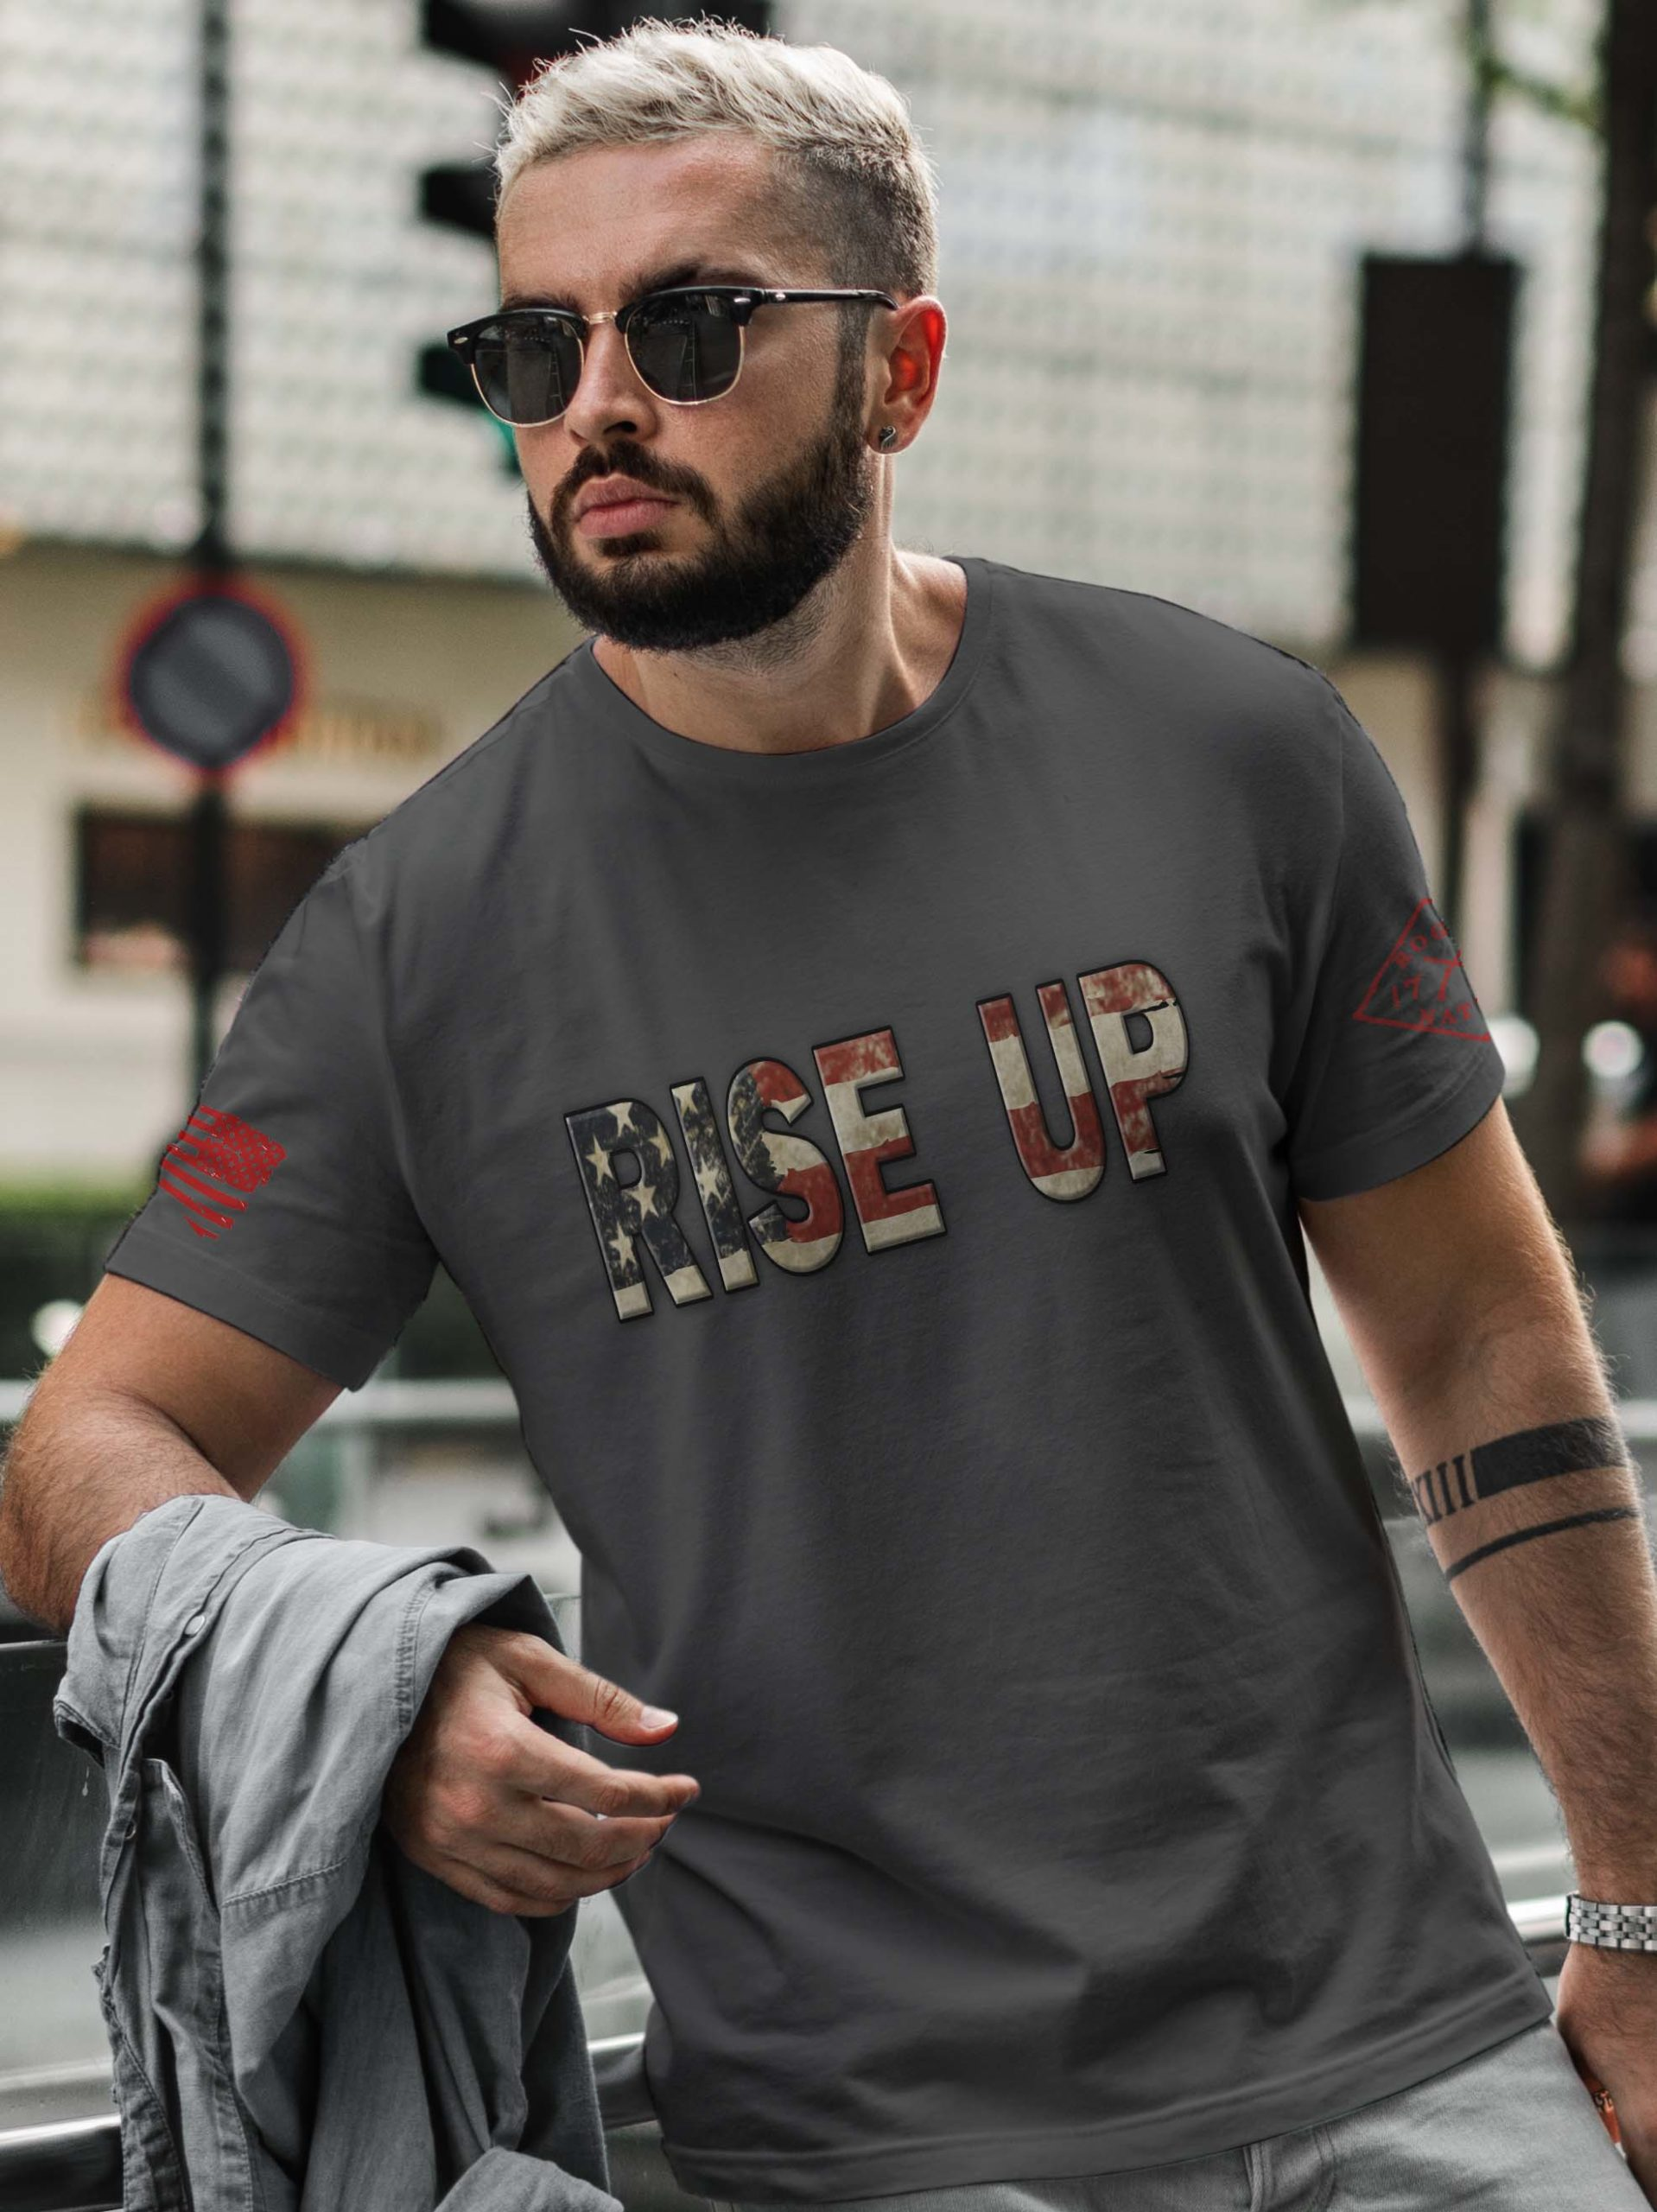 t-shirt with rise up on charcoal mens